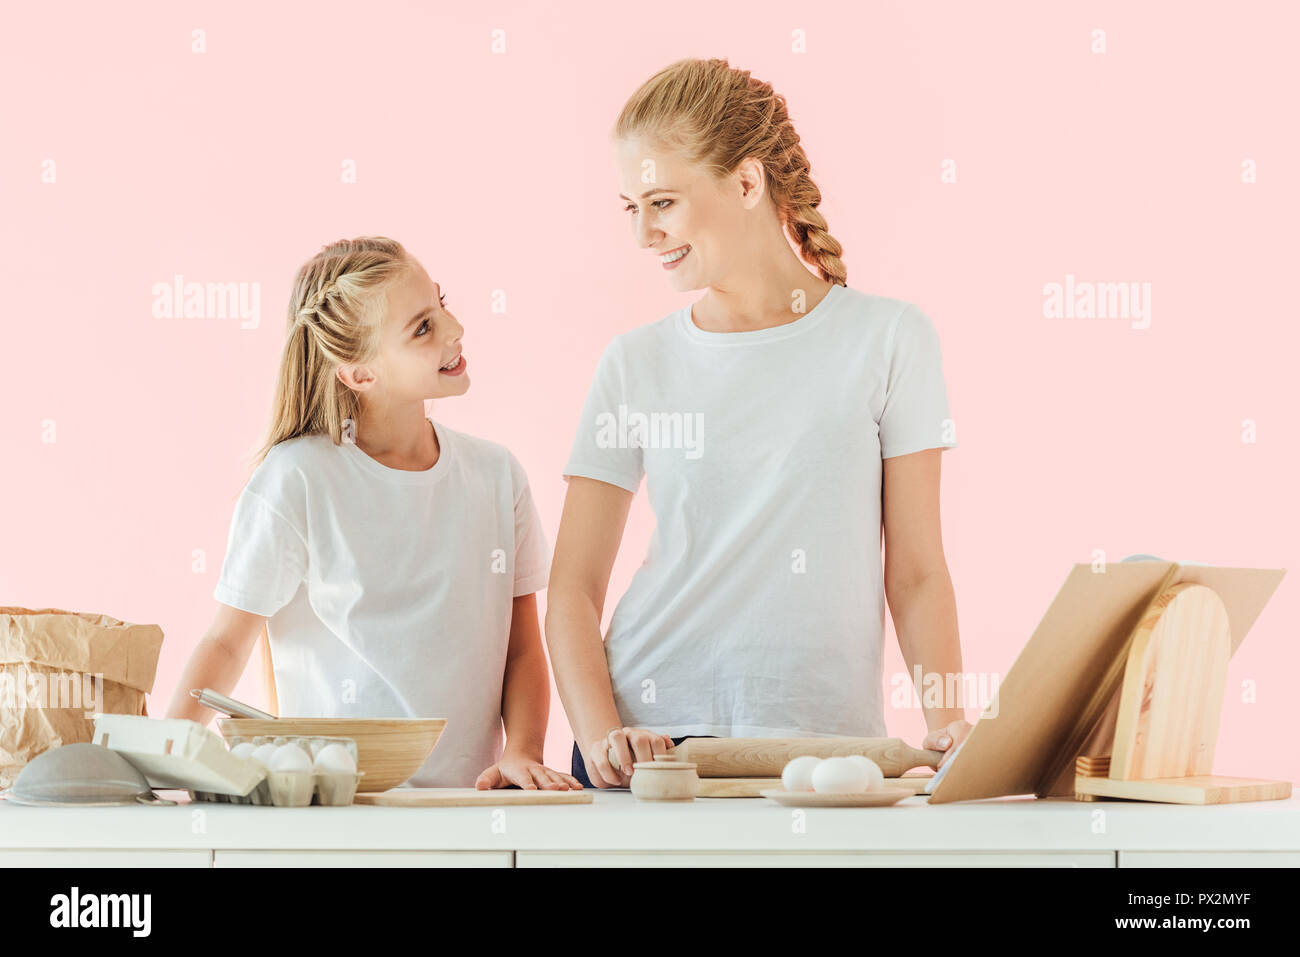 smiling mother and daughter in white t-shirts looking at each other while cooking together isolated on pink - Stock Image